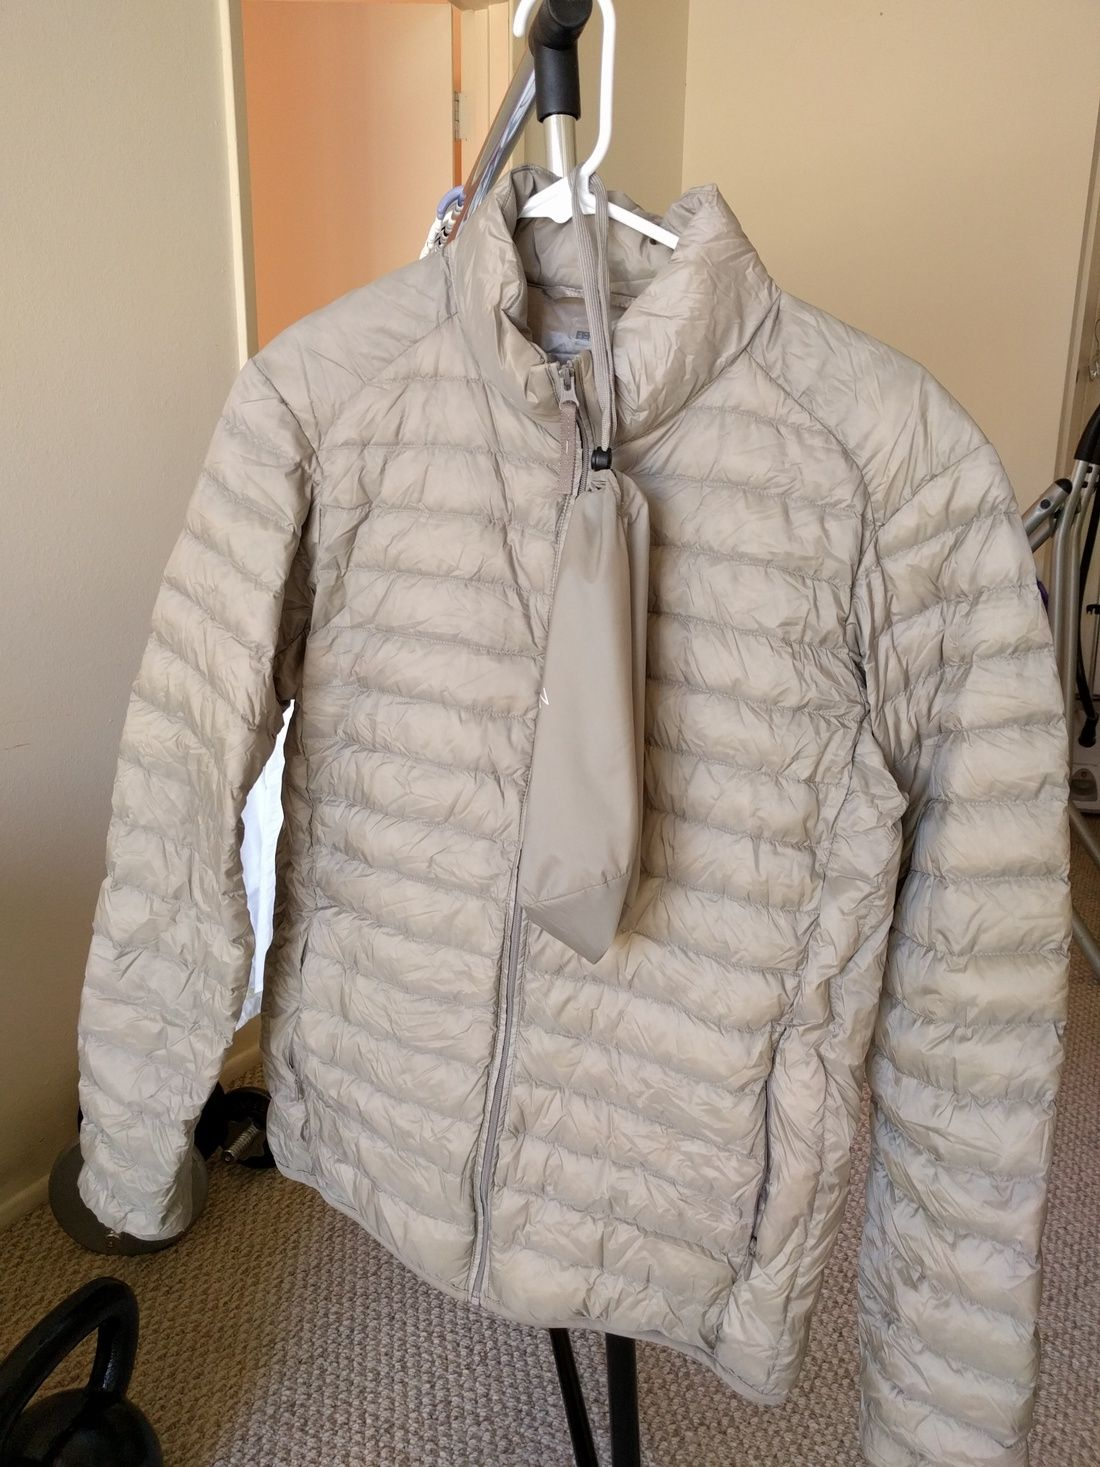 Uniqlo Ultra Light Down Jacket In Light Brown Size Xs 20 Down Jacket Jackets Light Brown [ 1467 x 1100 Pixel ]